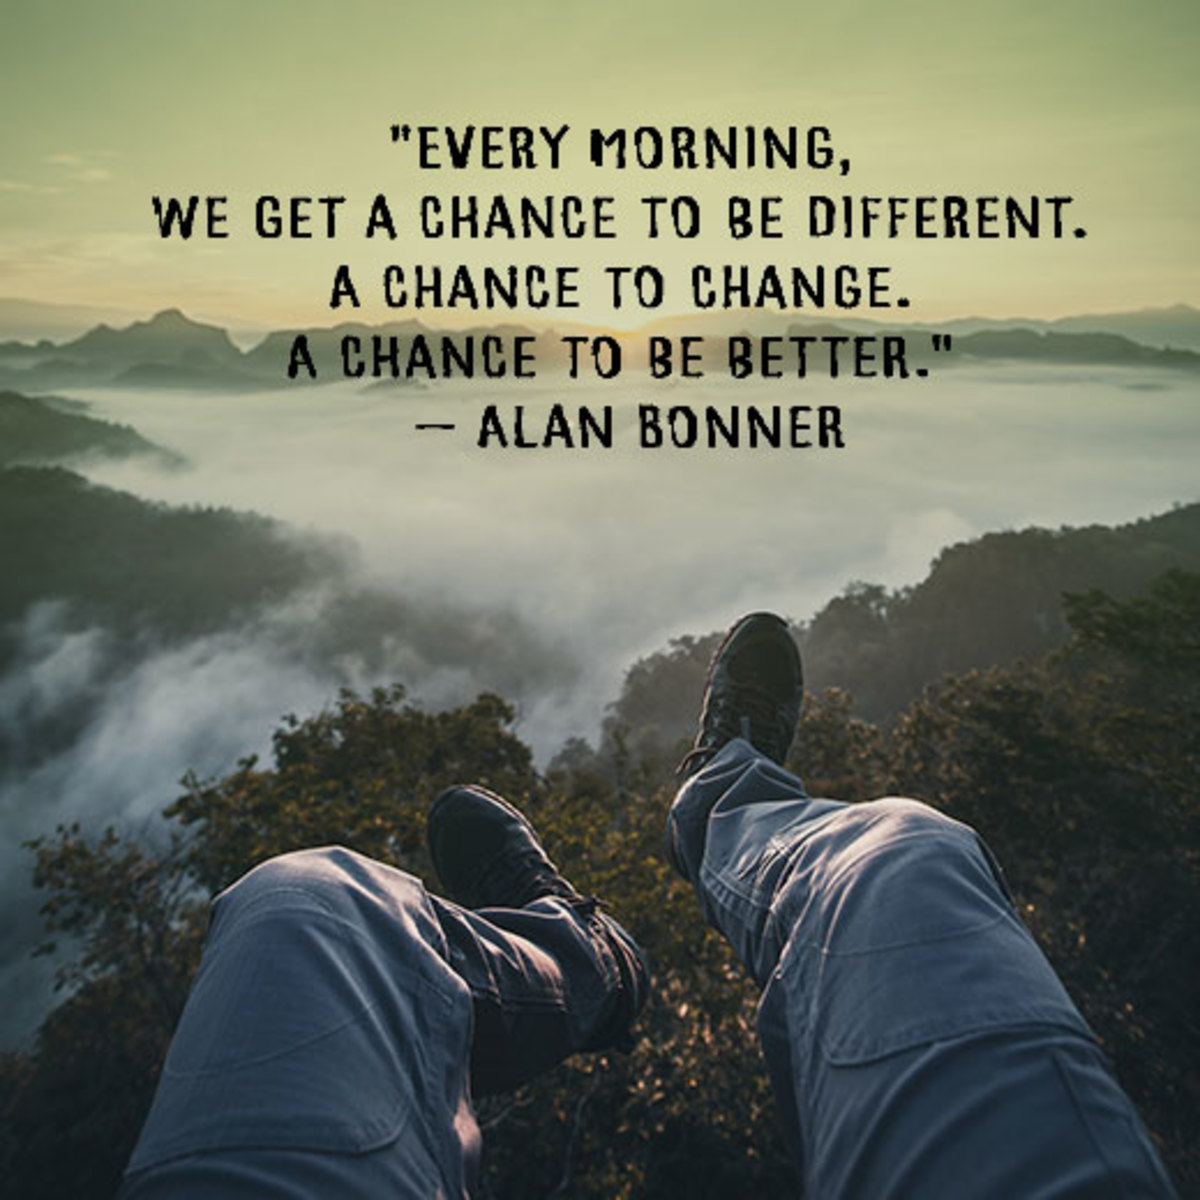 """""""Every morning, we get a chance to be different. A chance to change. A chance to be better."""" — Alan Bonner"""